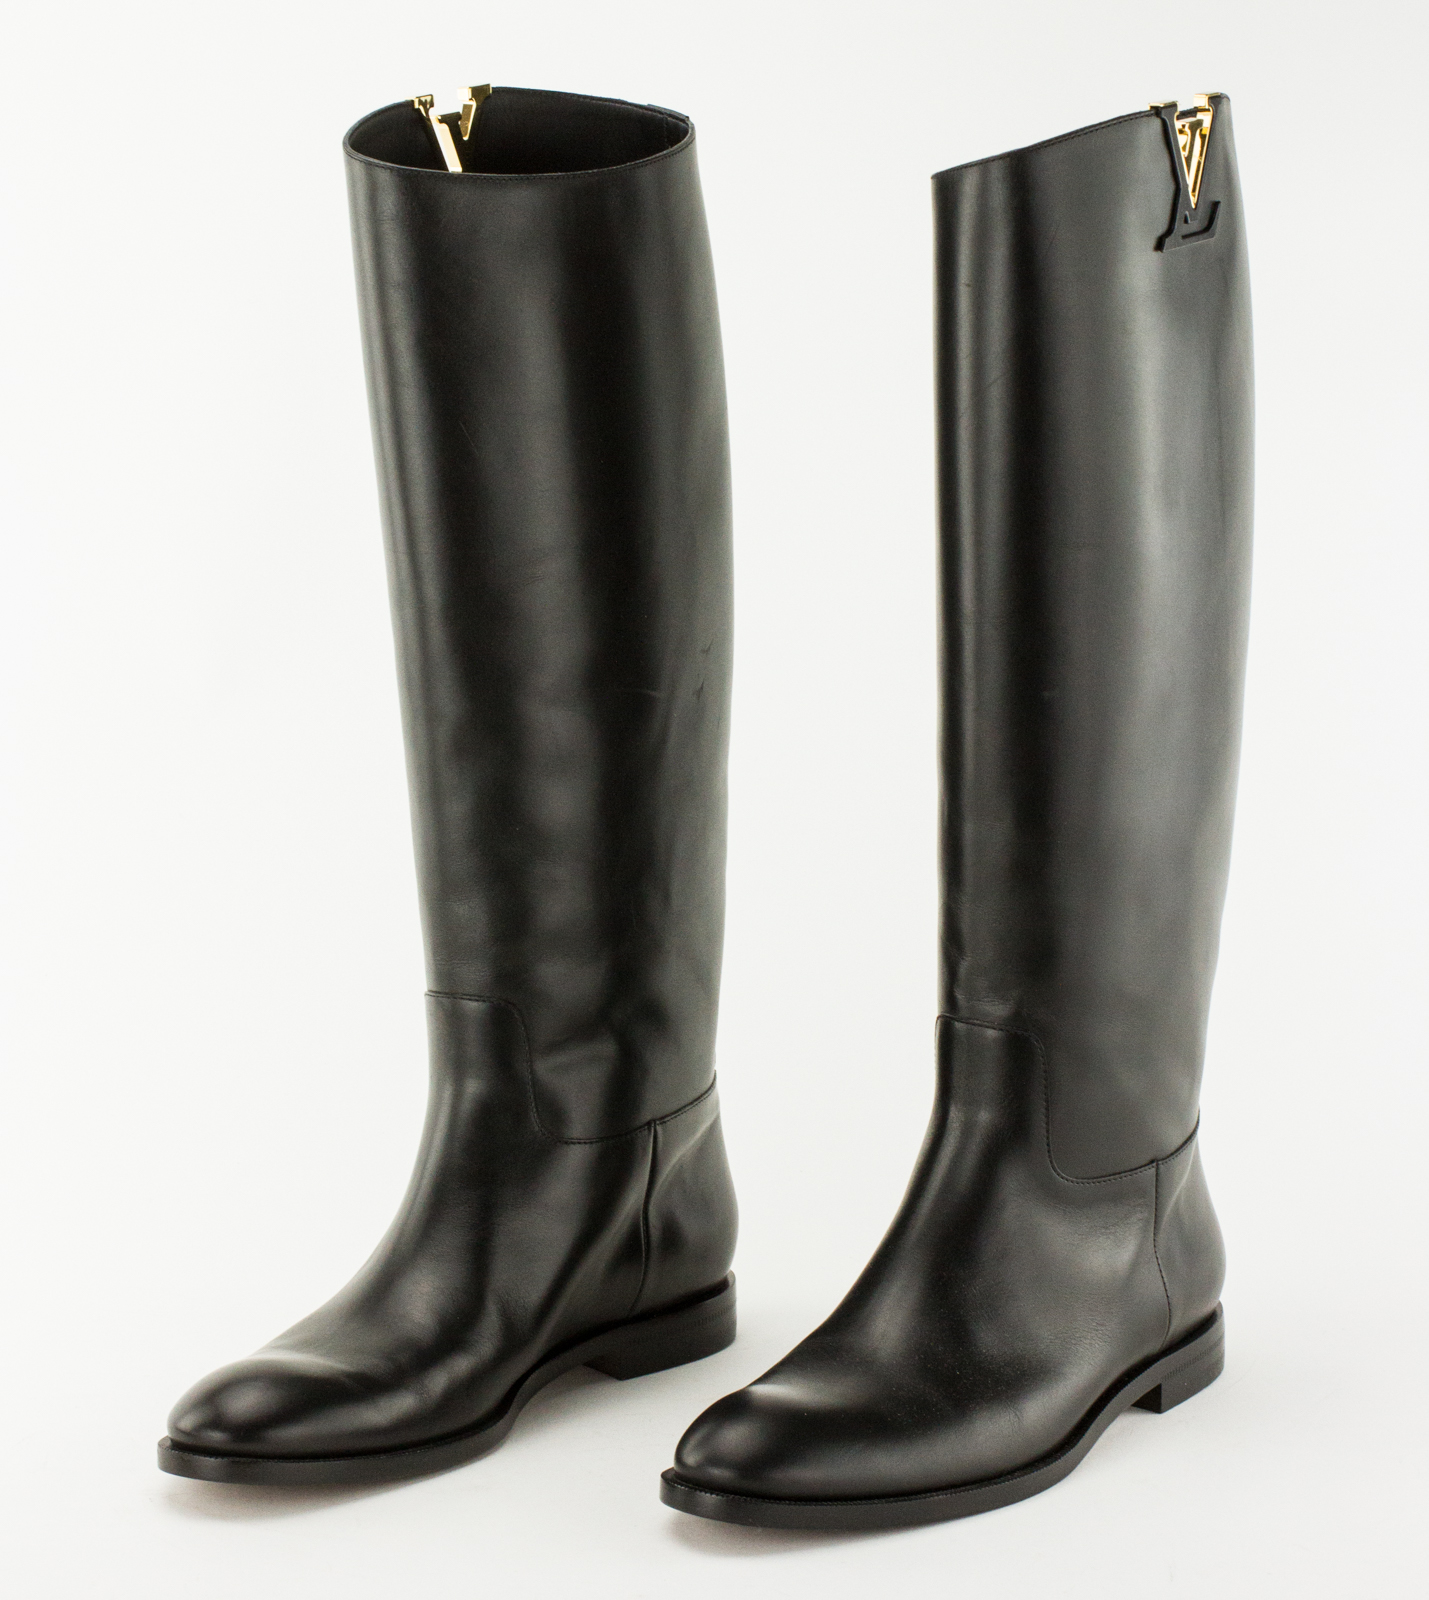 c729347c1fb2 Details about LOUIS VUITTON Black Leather Heritage Tall Boot with Gold  Accent